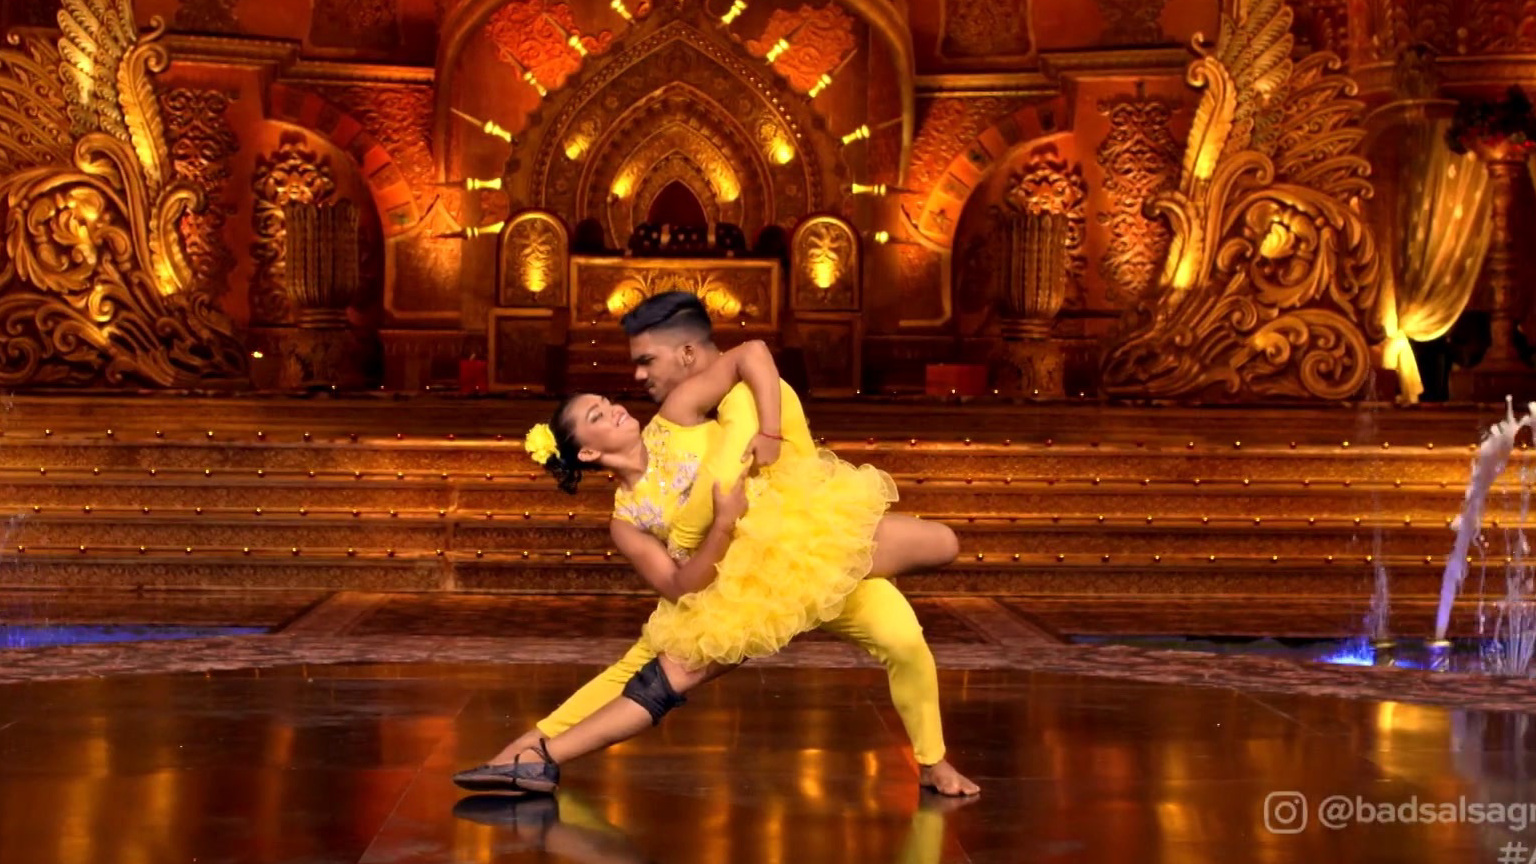 America's Got Talent: Bad Salsa Brings Their Best Dance Moves From India